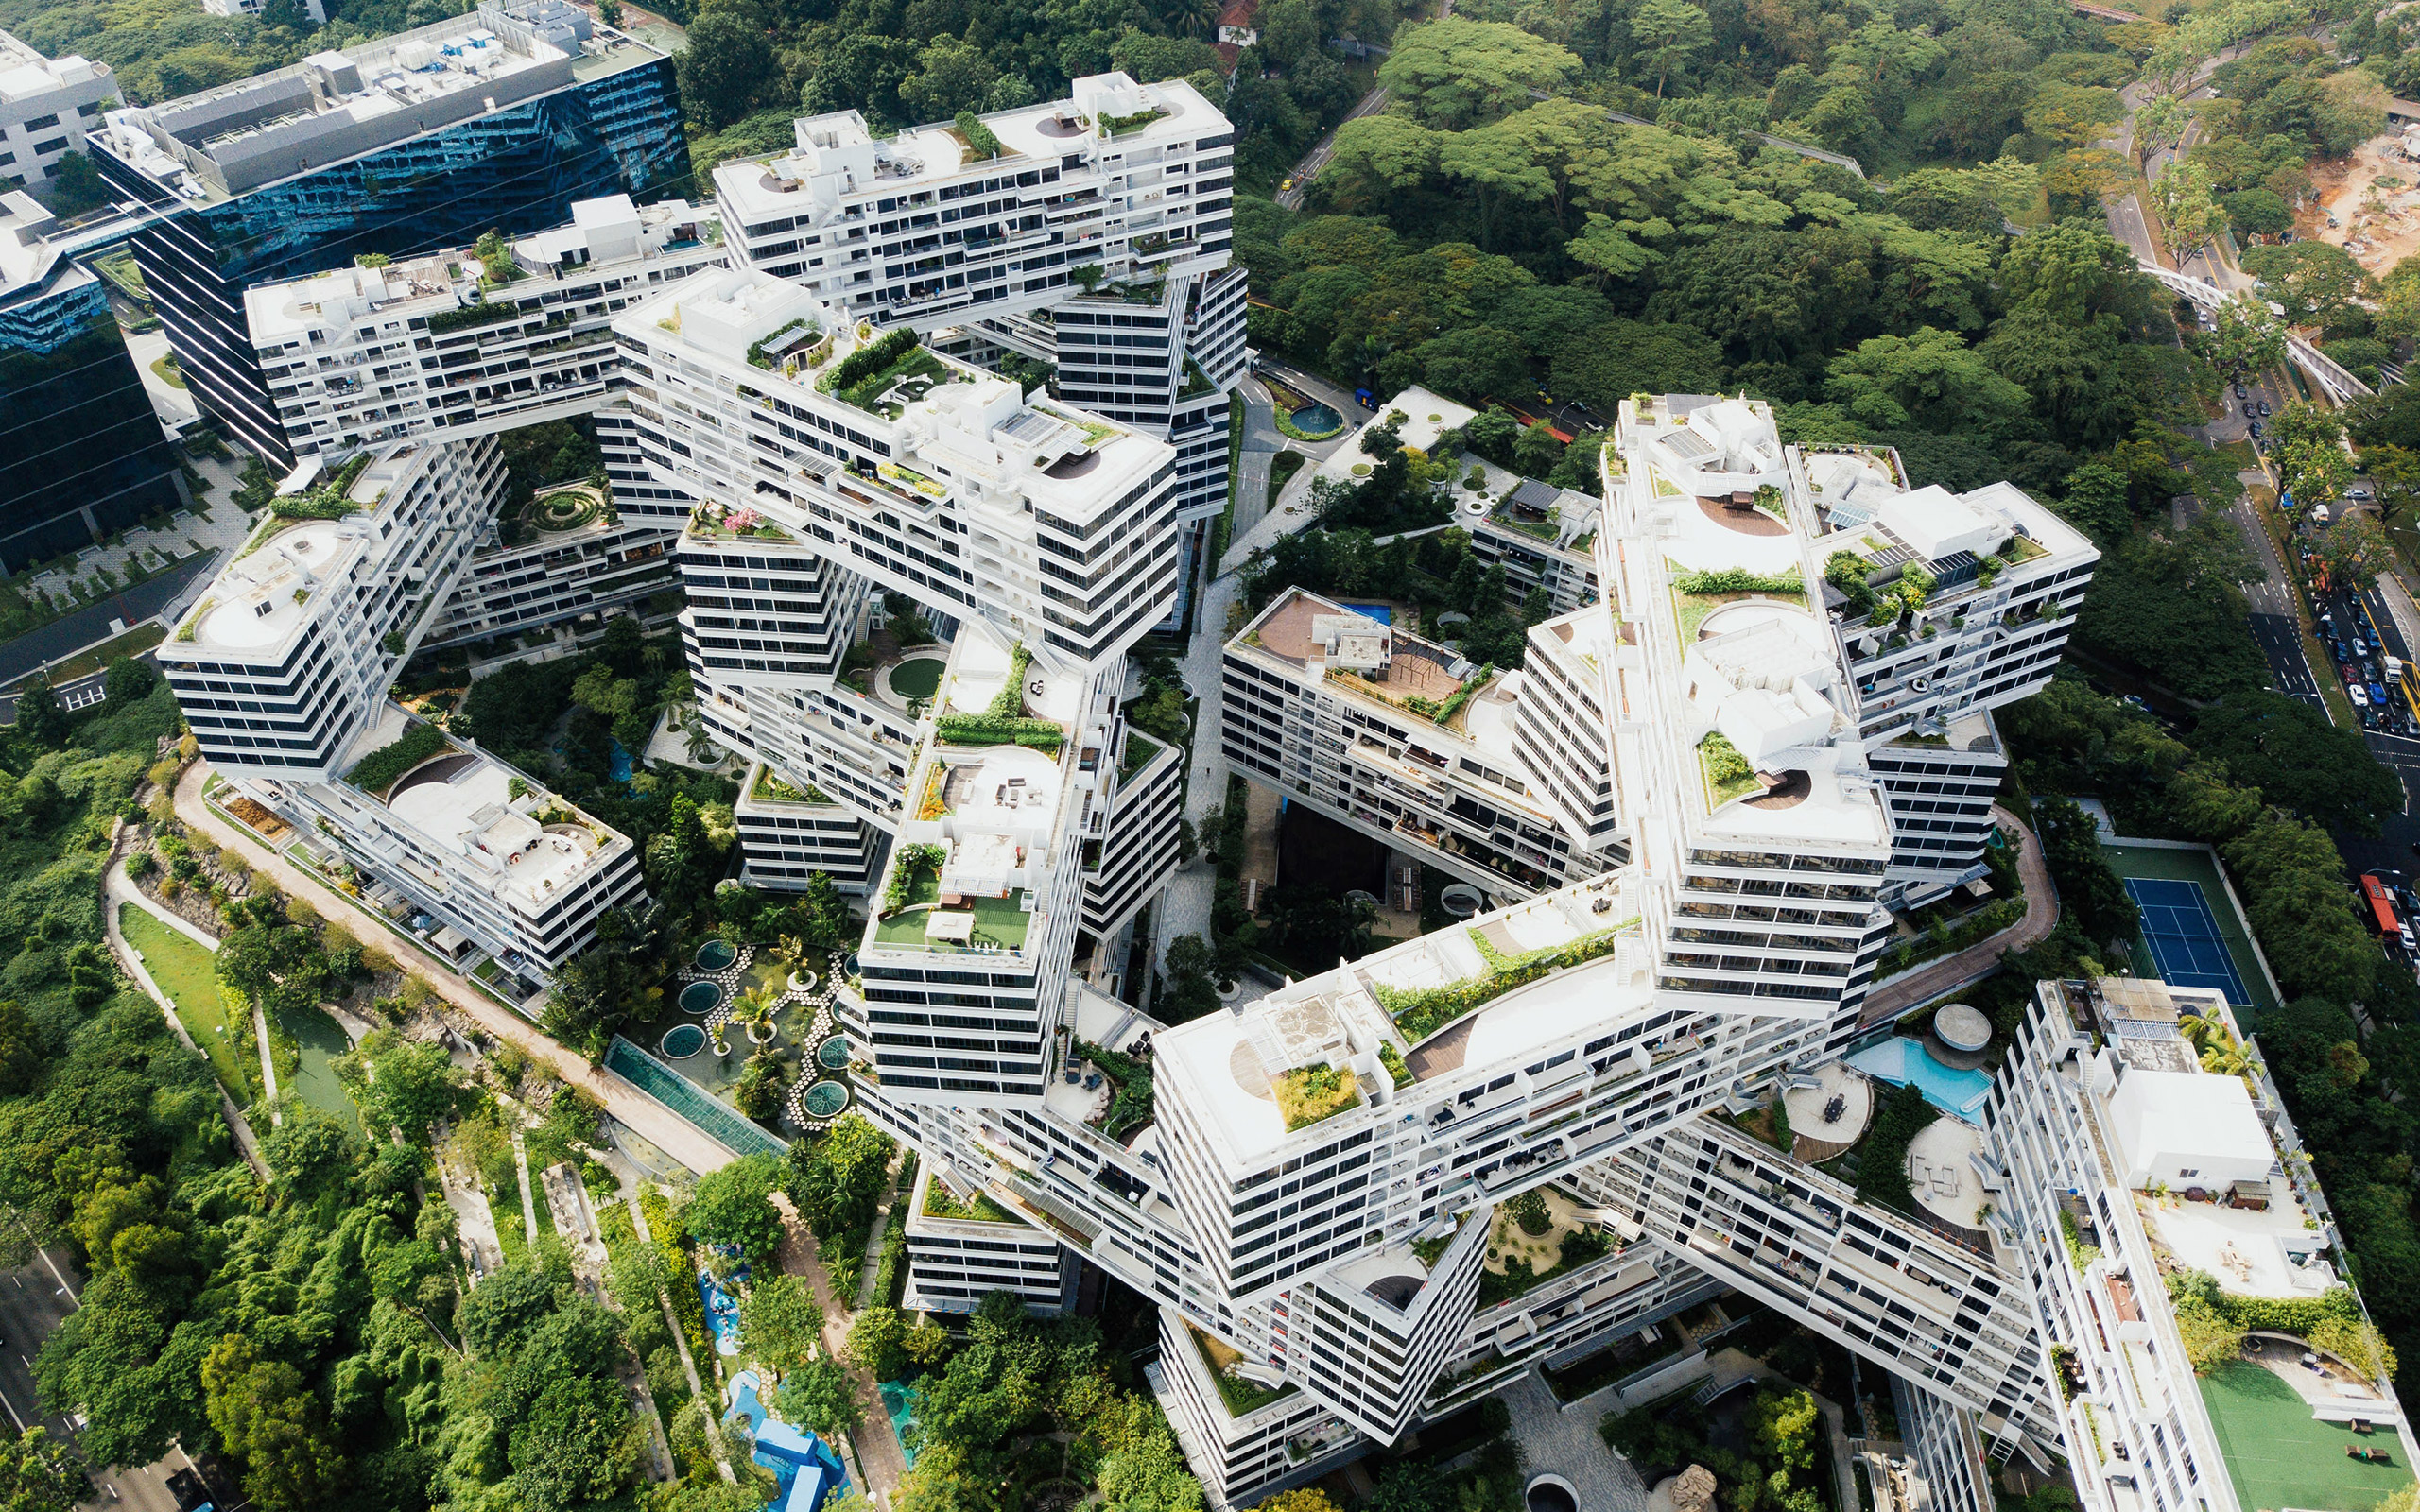 Interesting Wallpaper Quotes Daily Wallpaper The Interlace Singapore I Like To